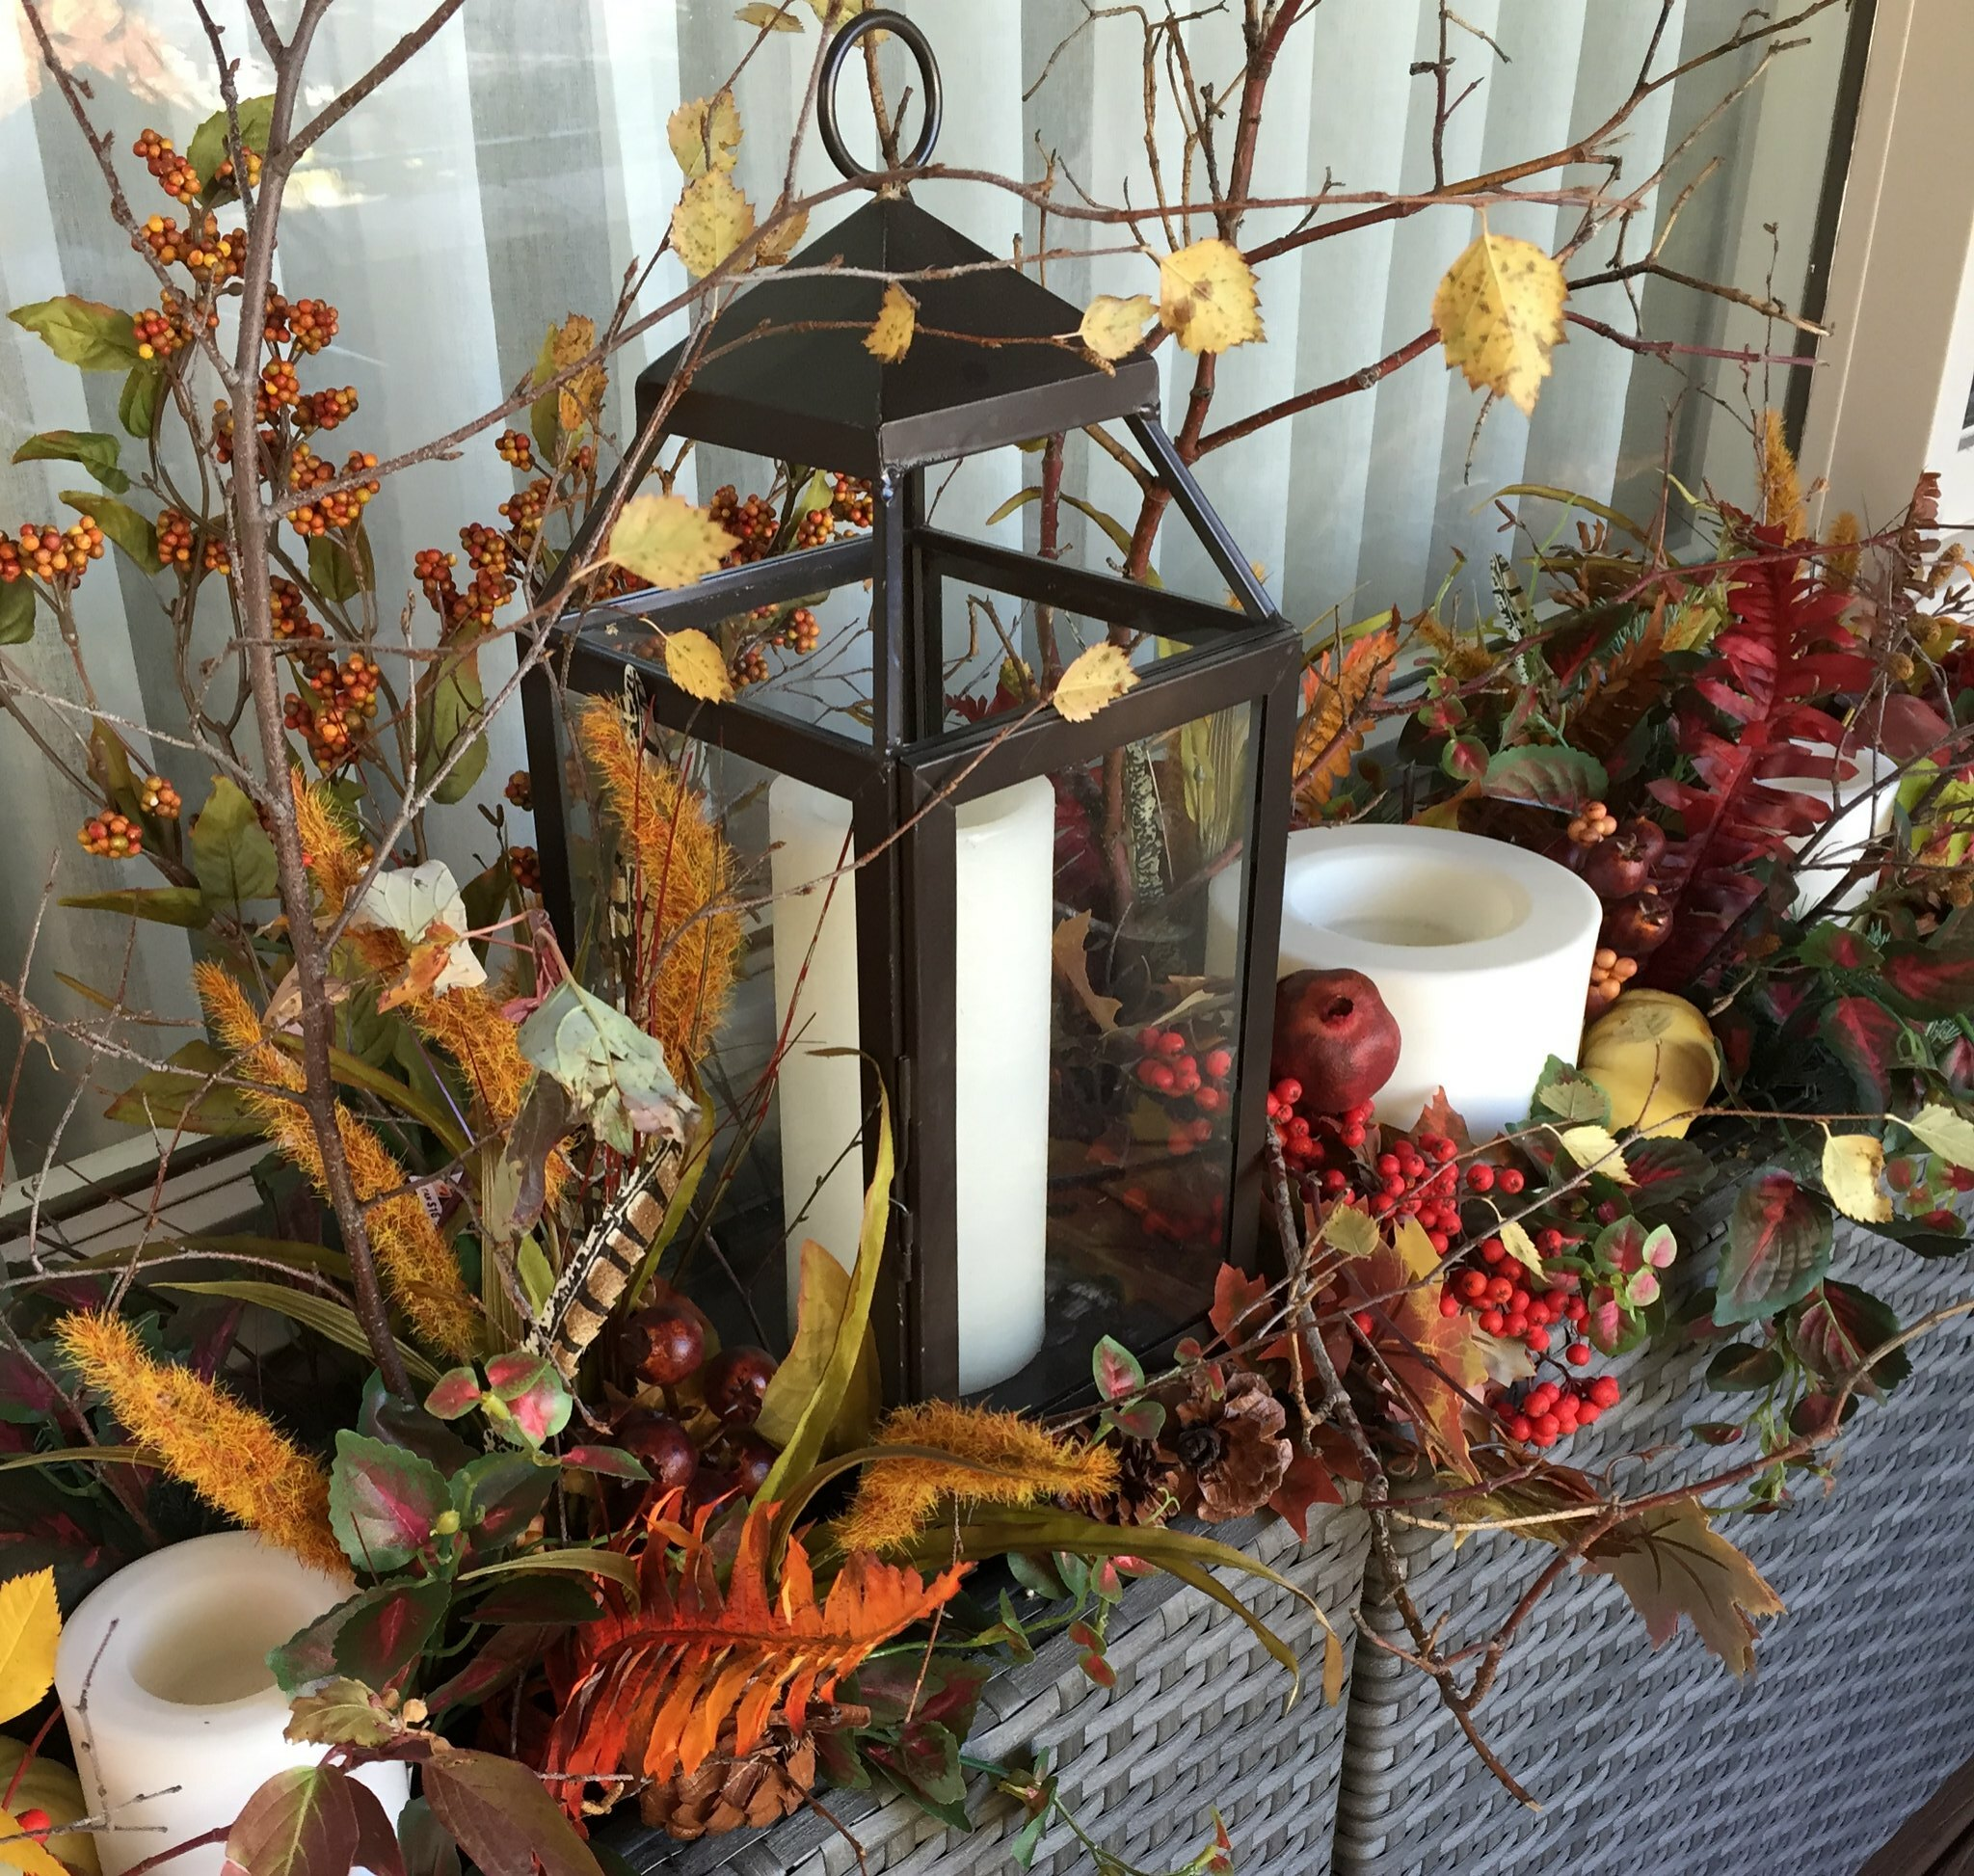 Autumn outdoor decorating with candles, twigs and berries